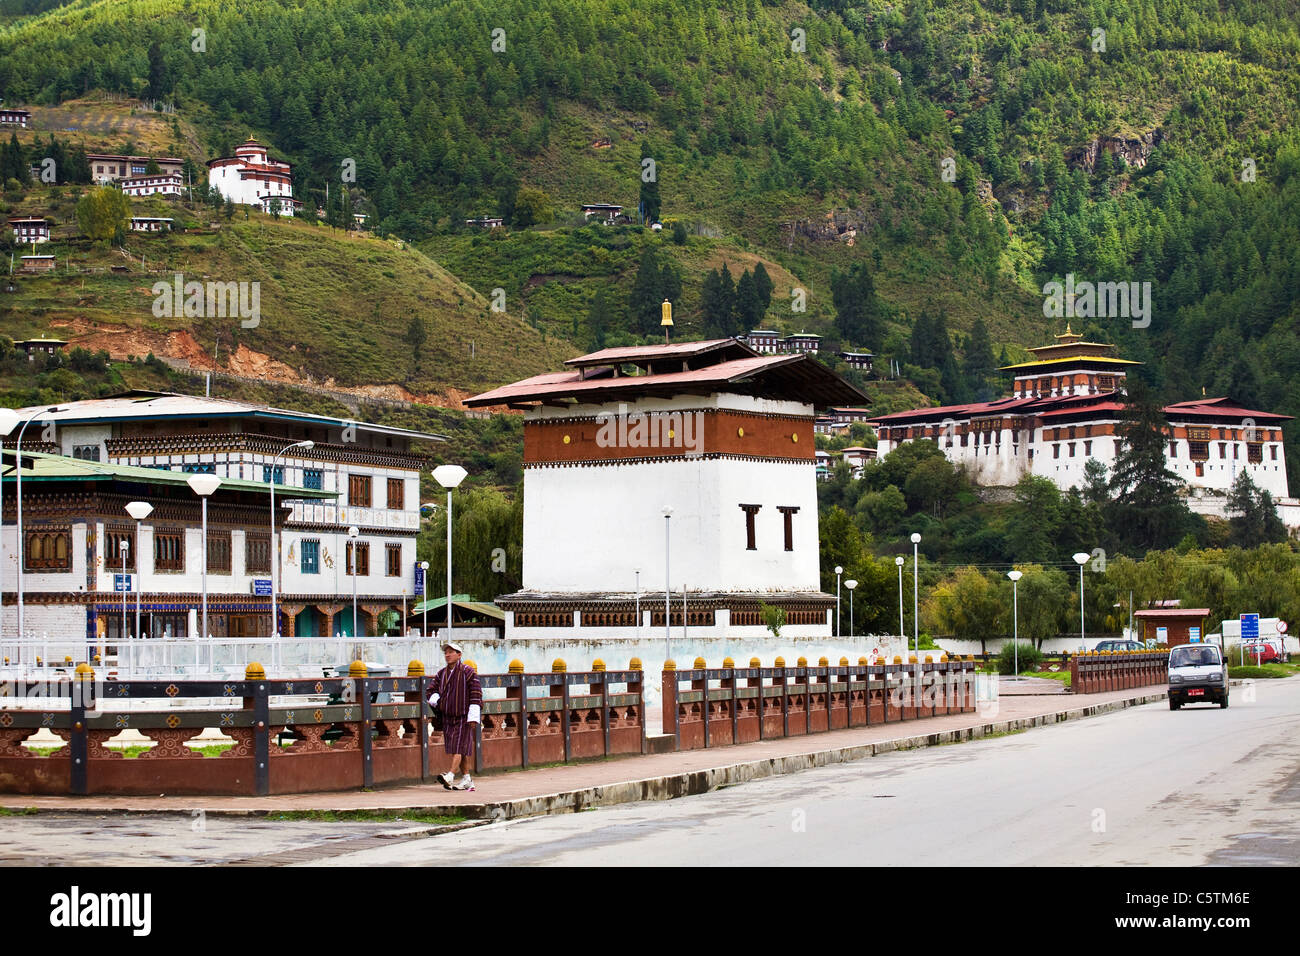 Road leading to Paro market. Paro Dzong and National museum can be seen in the background. - Stock Image